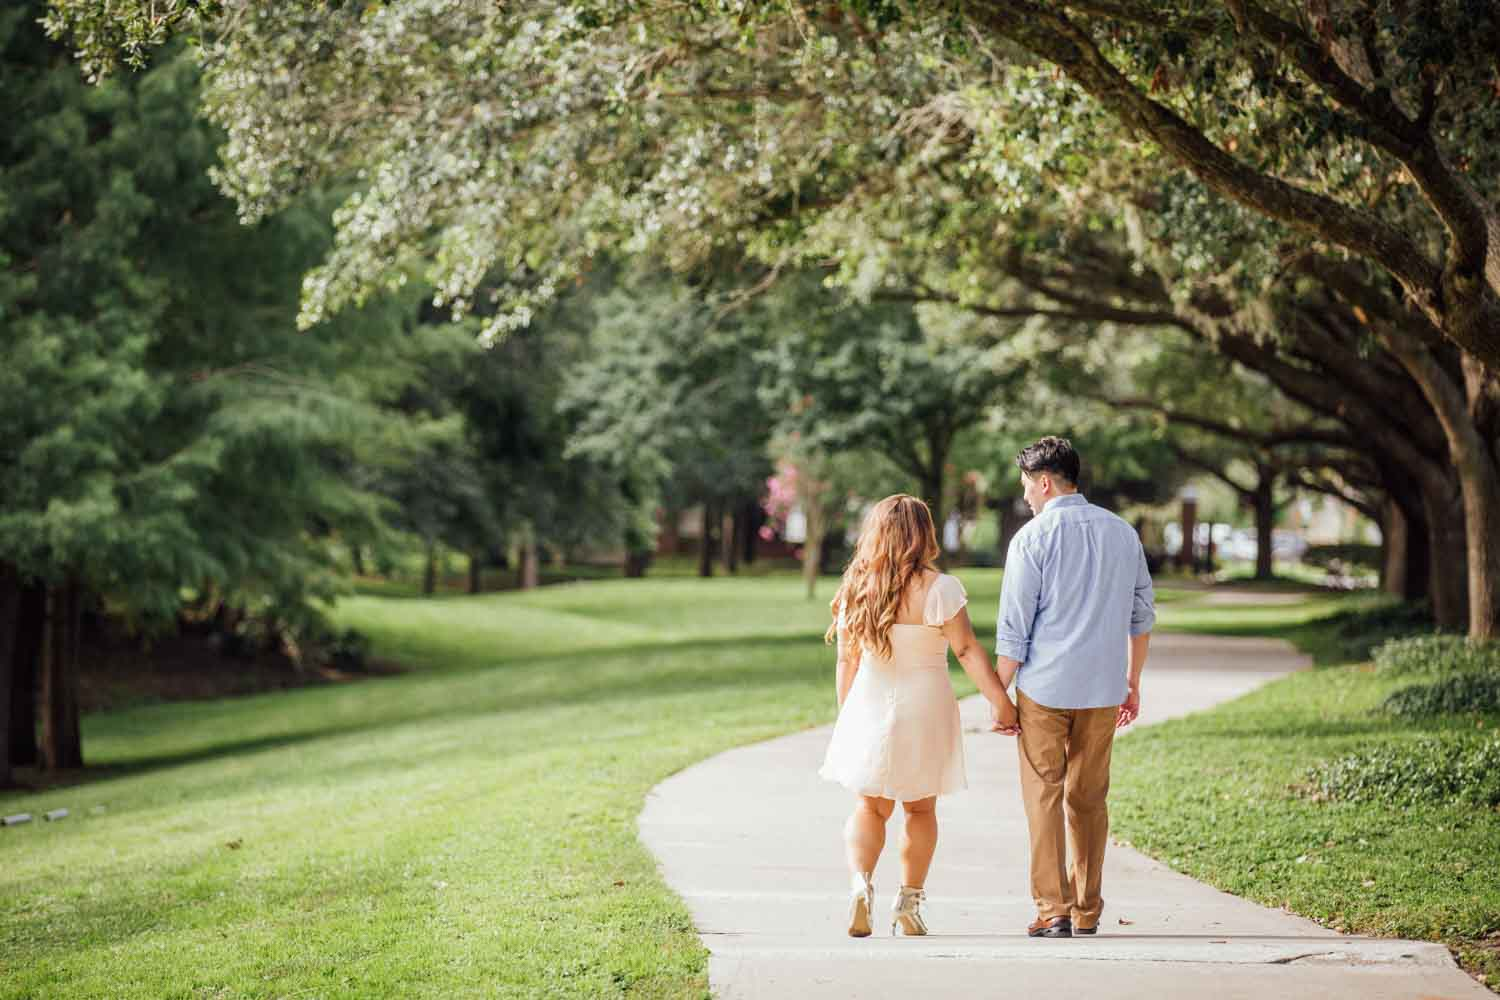 couple walking down winding sidewalk